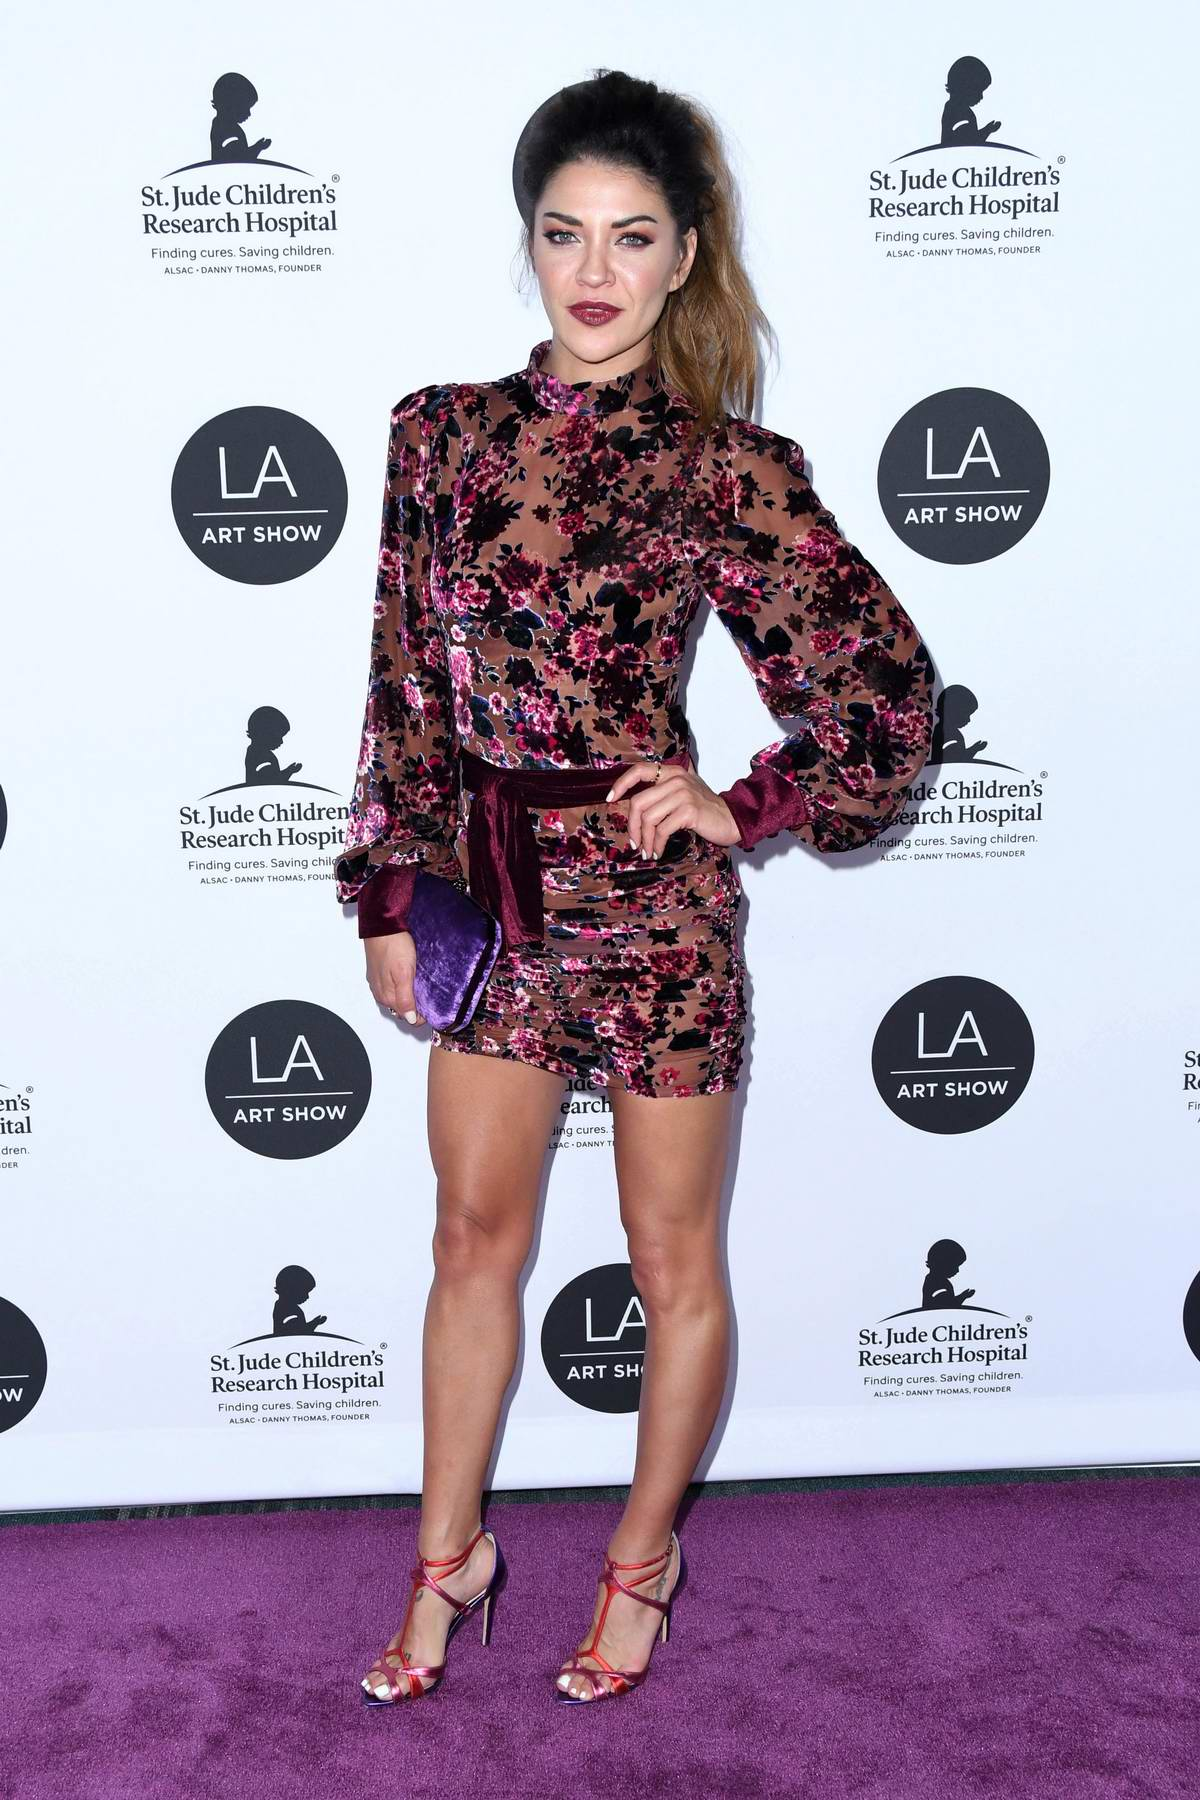 Jessica Szohr attends the 24th Annual LA Art Show held at The Convention Center in Los Angeles